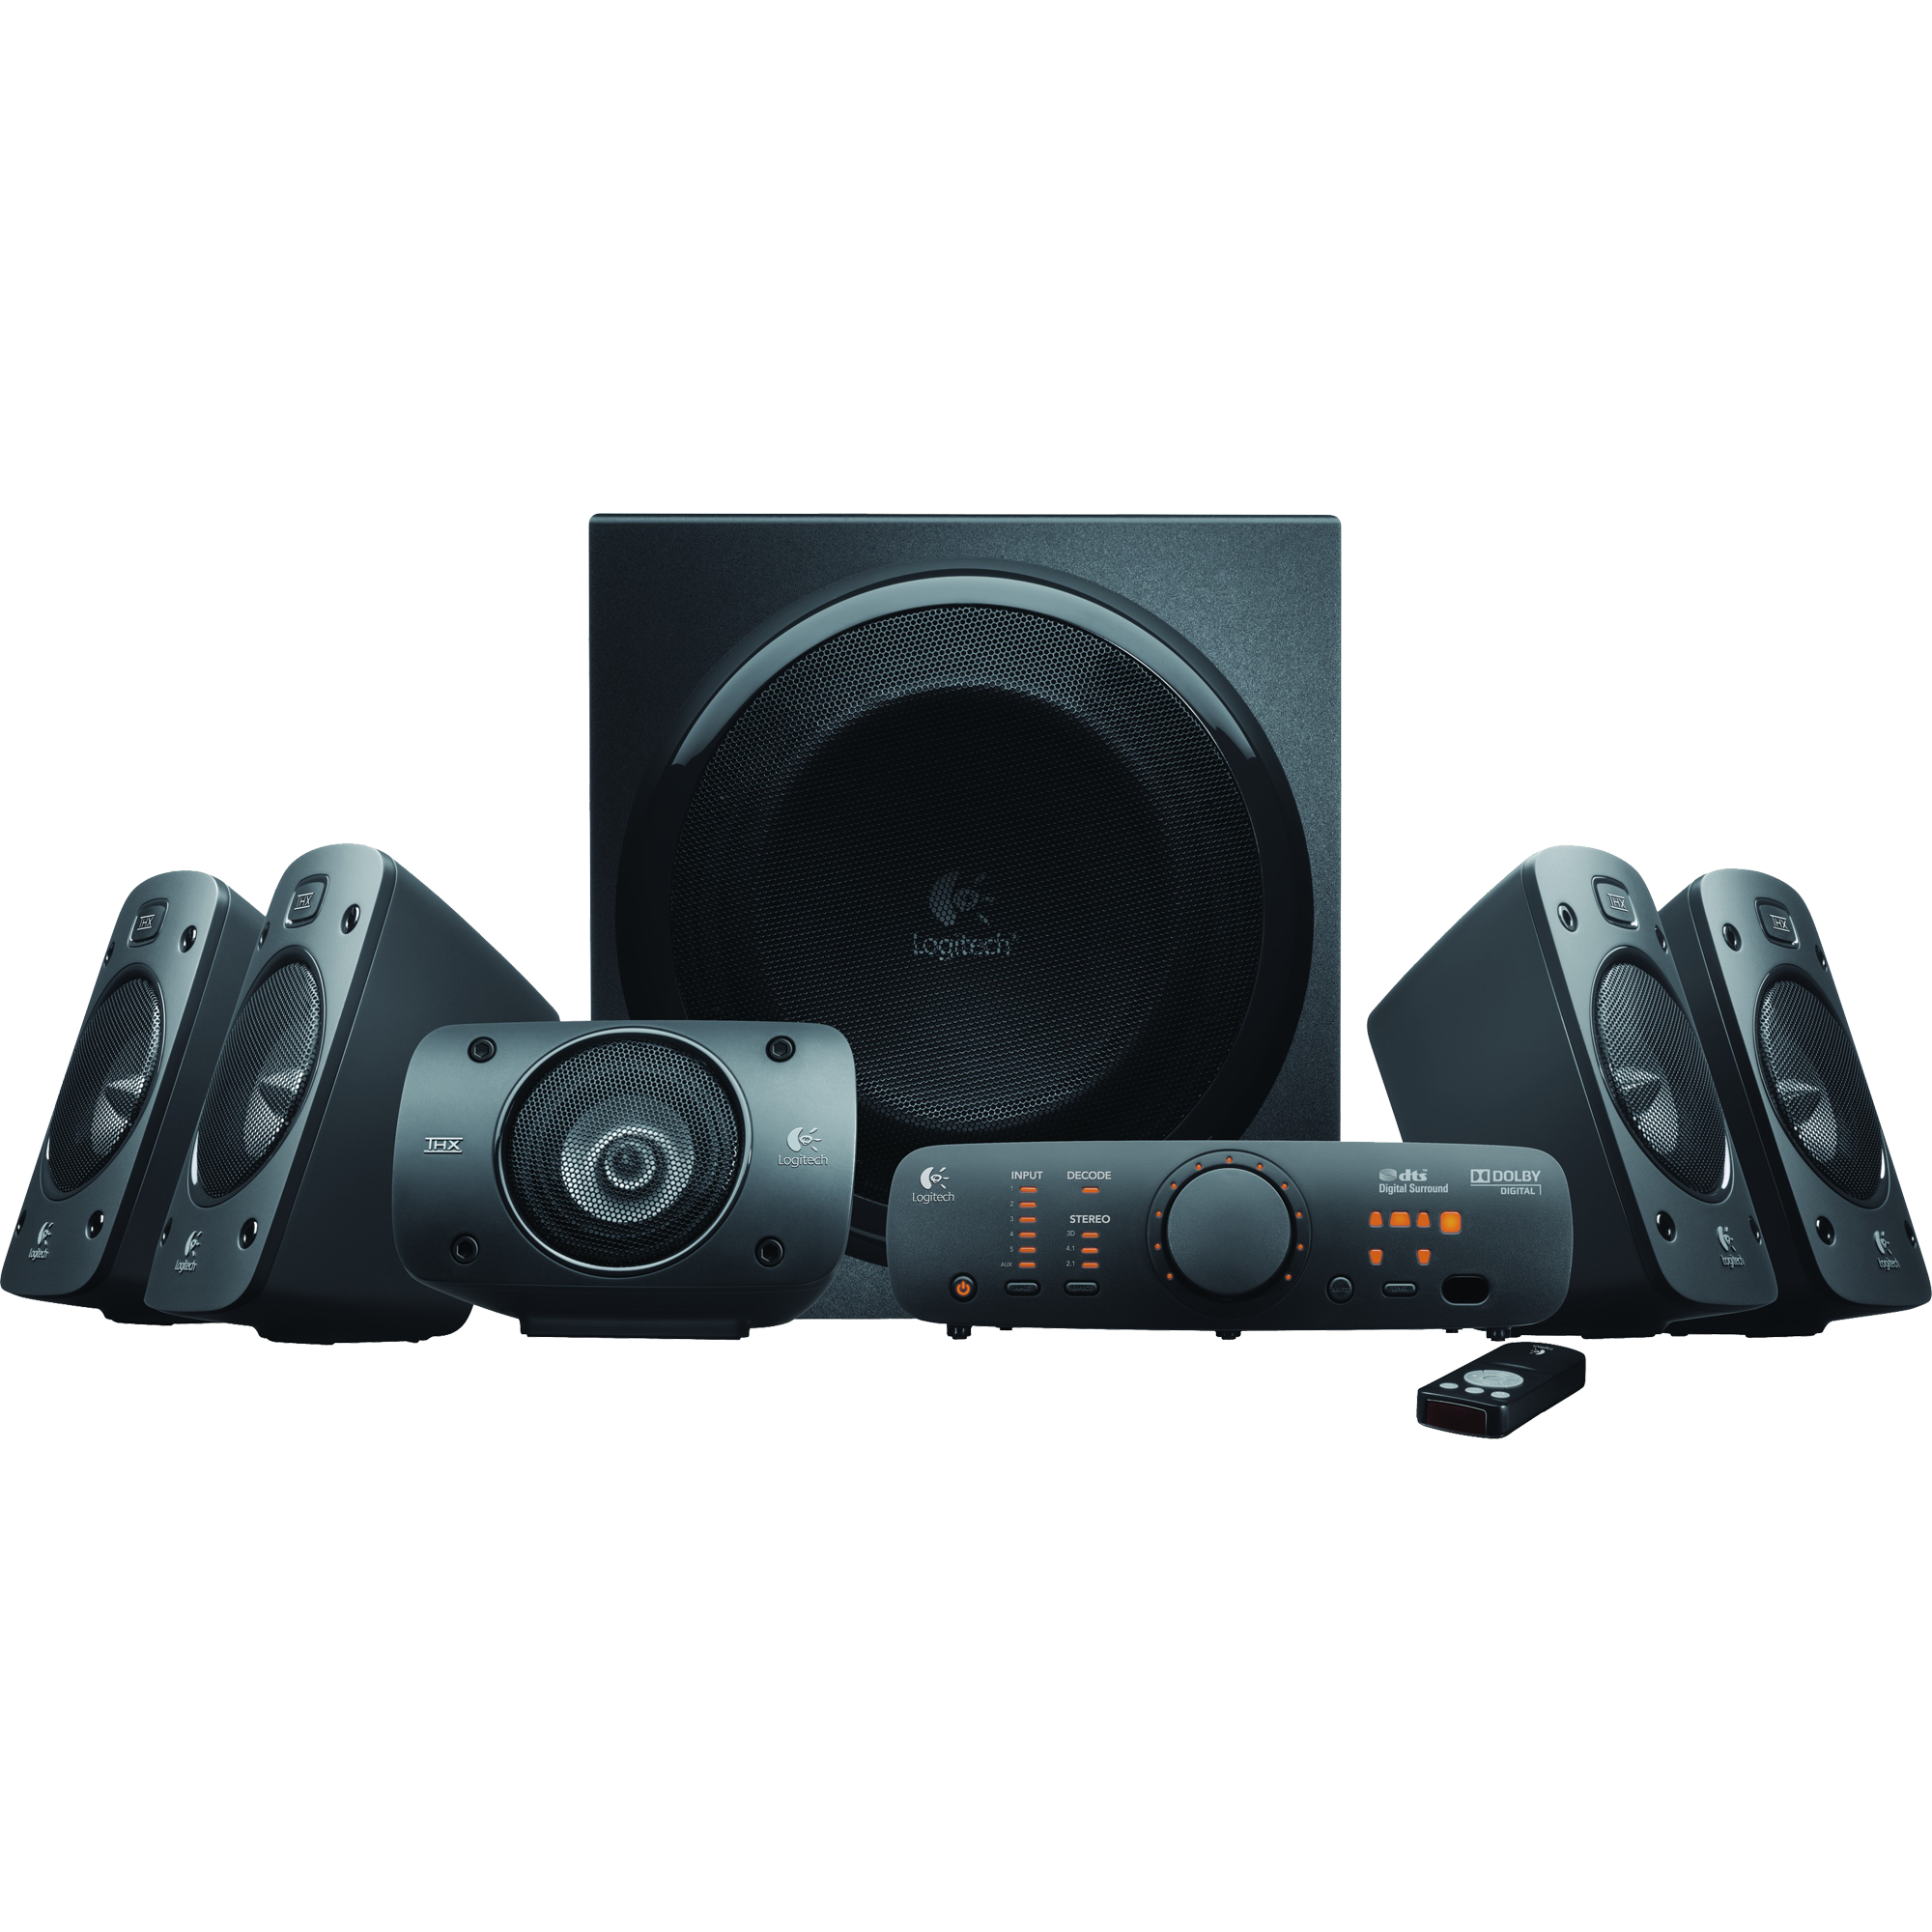 Logitech Z-906 THX Certified 5.1 Surround Sound Speakers